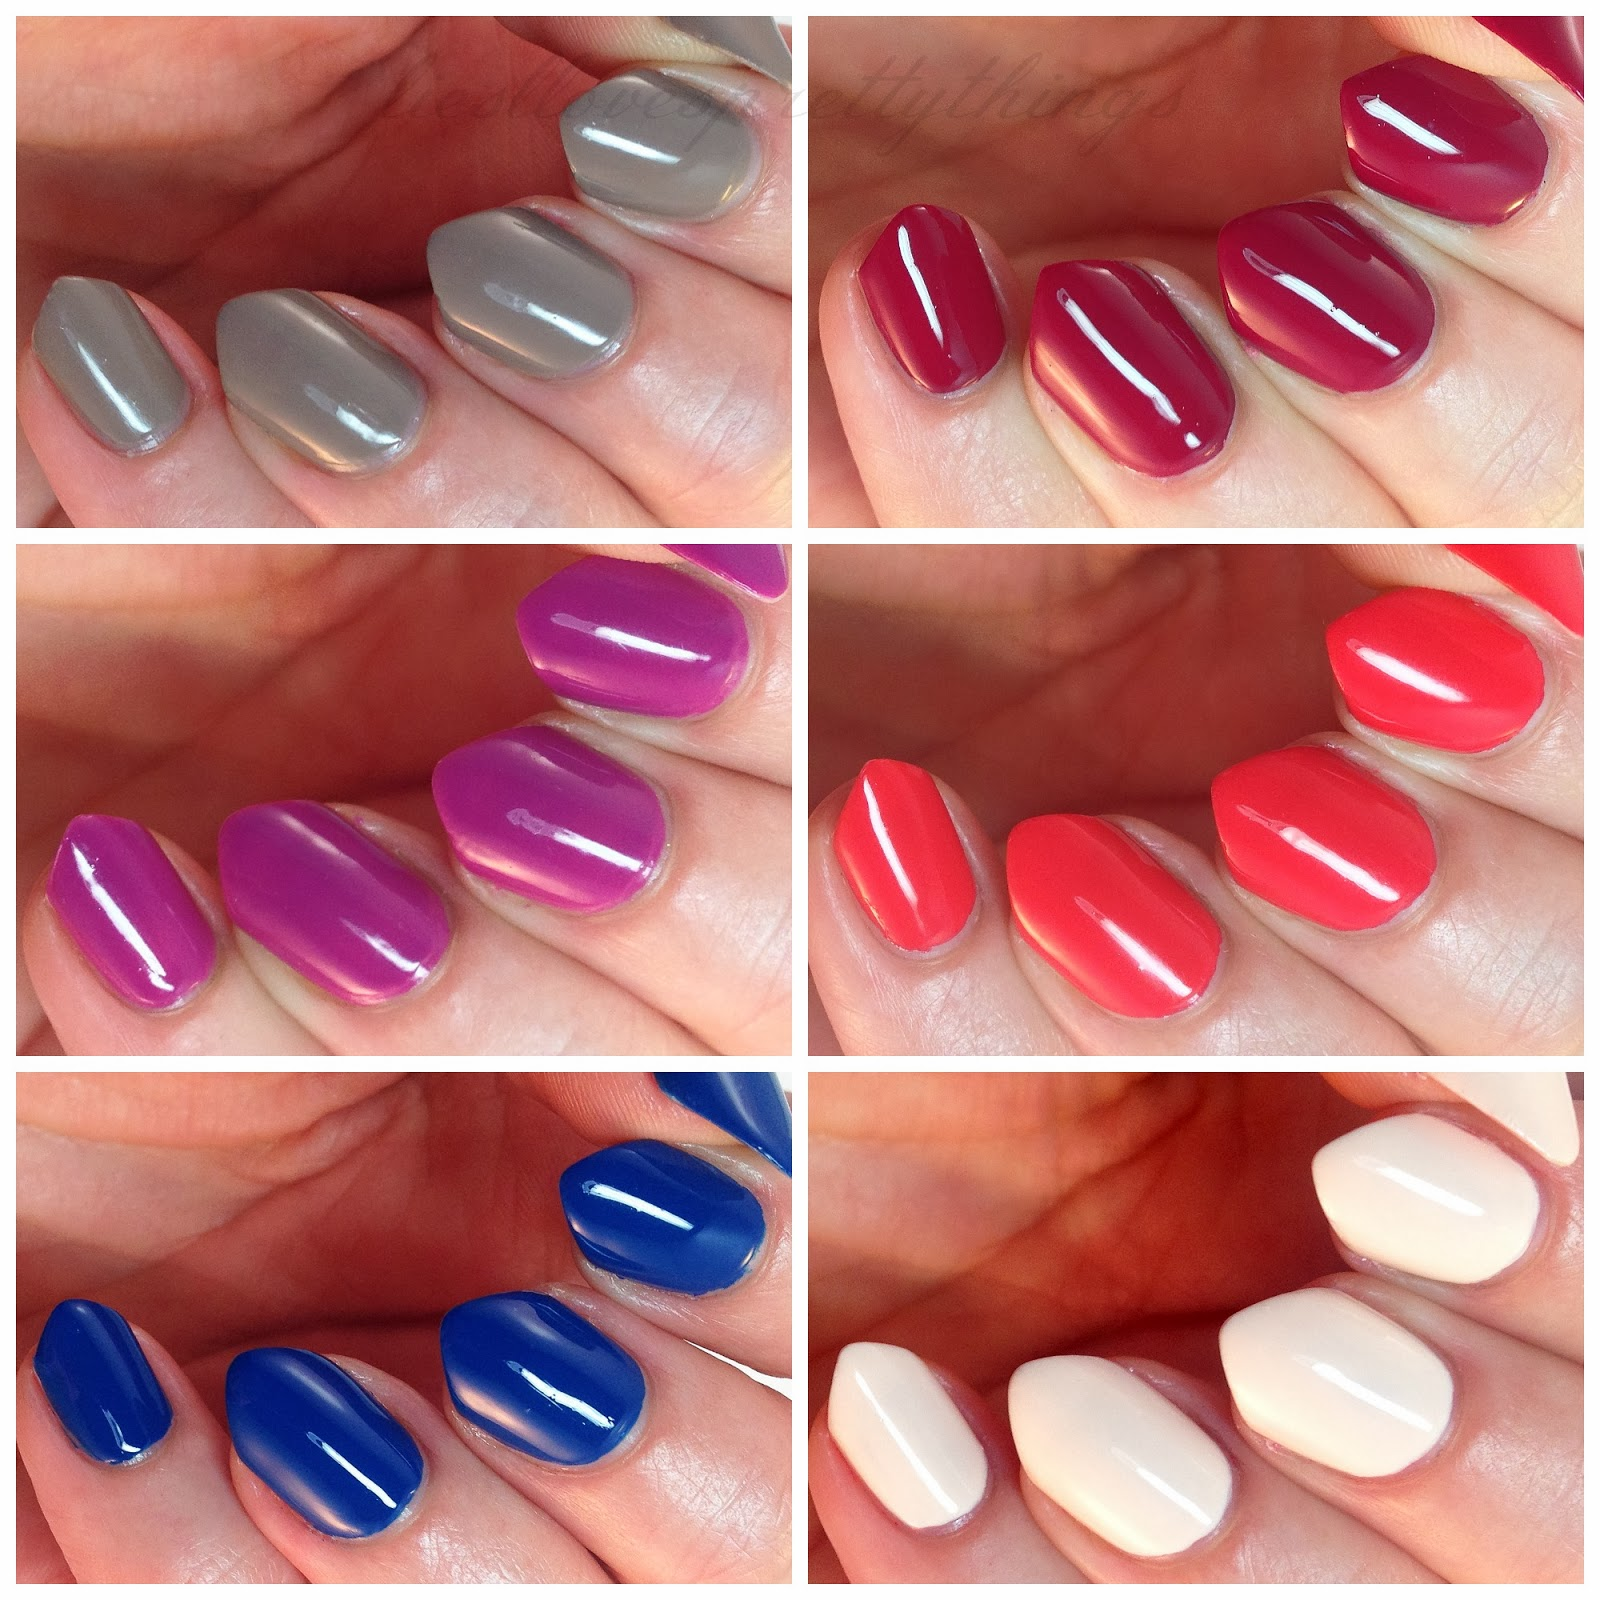 LVX Spring 2014 collection swatches and review